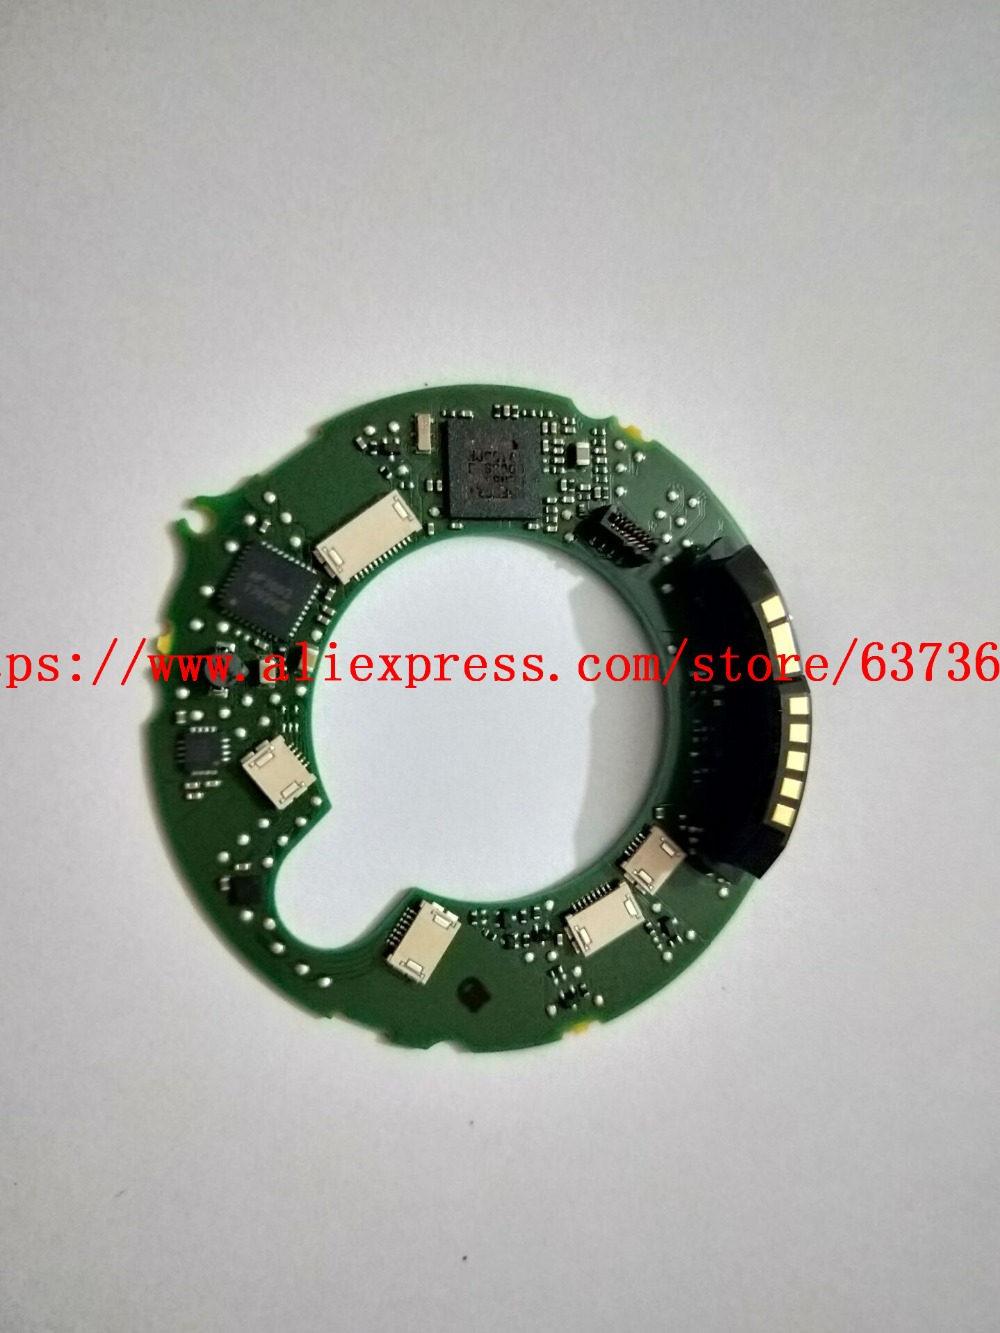 new 10-18 mm for Canon EF-S 10-18mm f/4.5-5.6 IS STM Main Board PCB Assembly Replacement Part объектив canon ef s is stm 1620c005 18 55мм f 4 5 6 черный